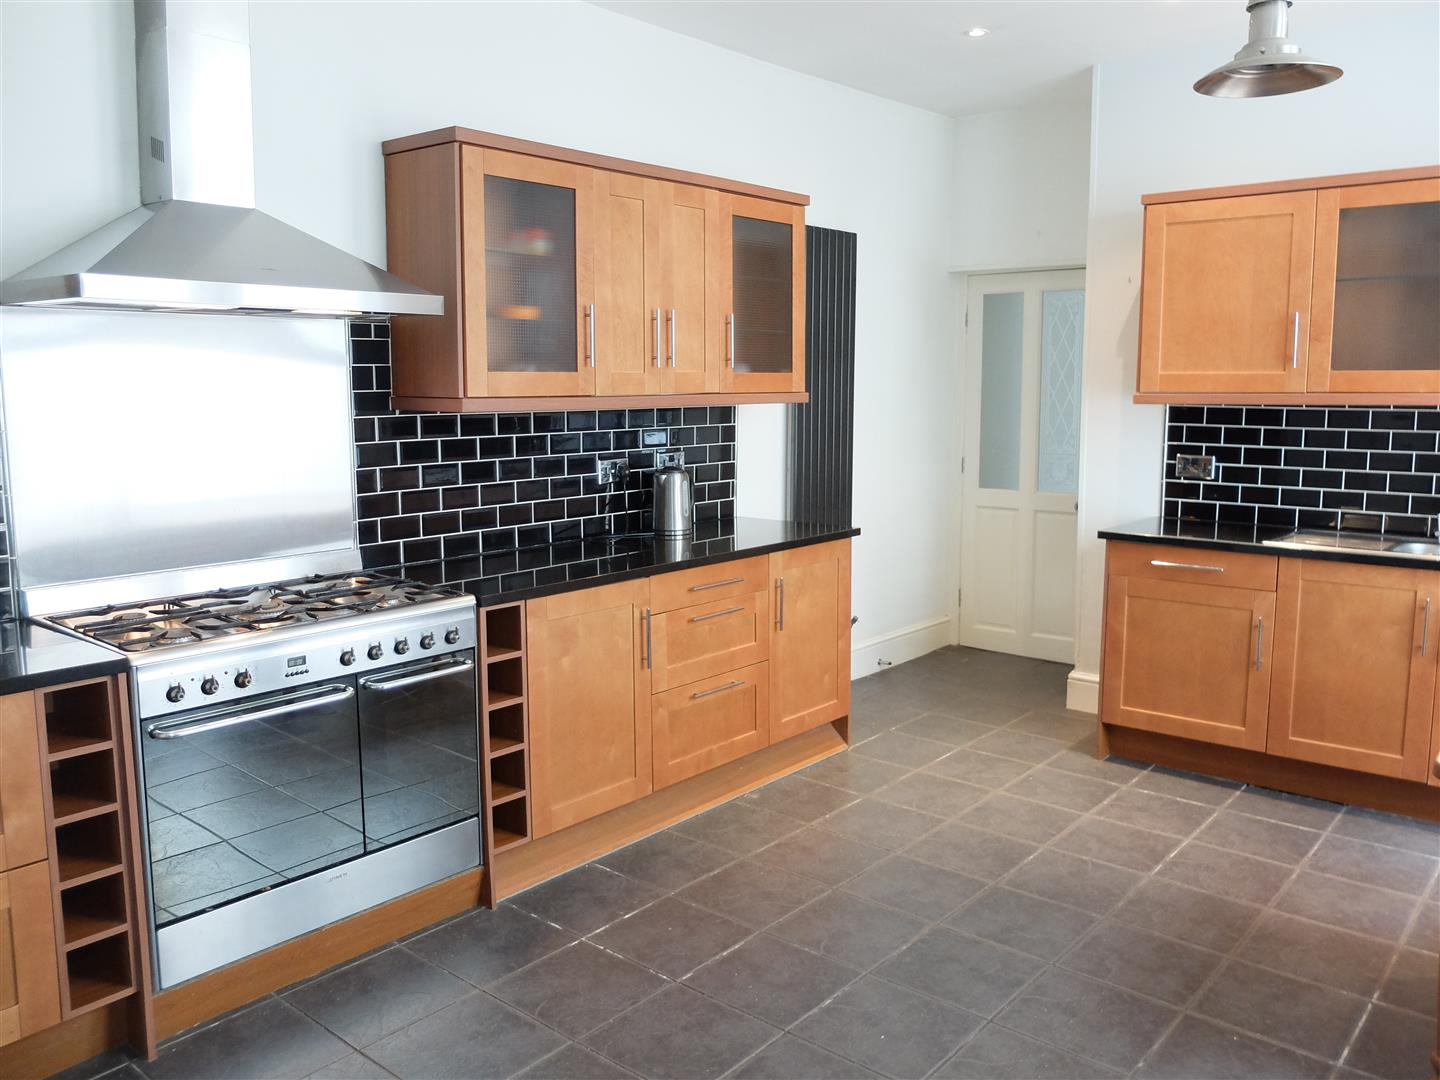 Home For Sale 40 Victoria Place Carlisle 219,995